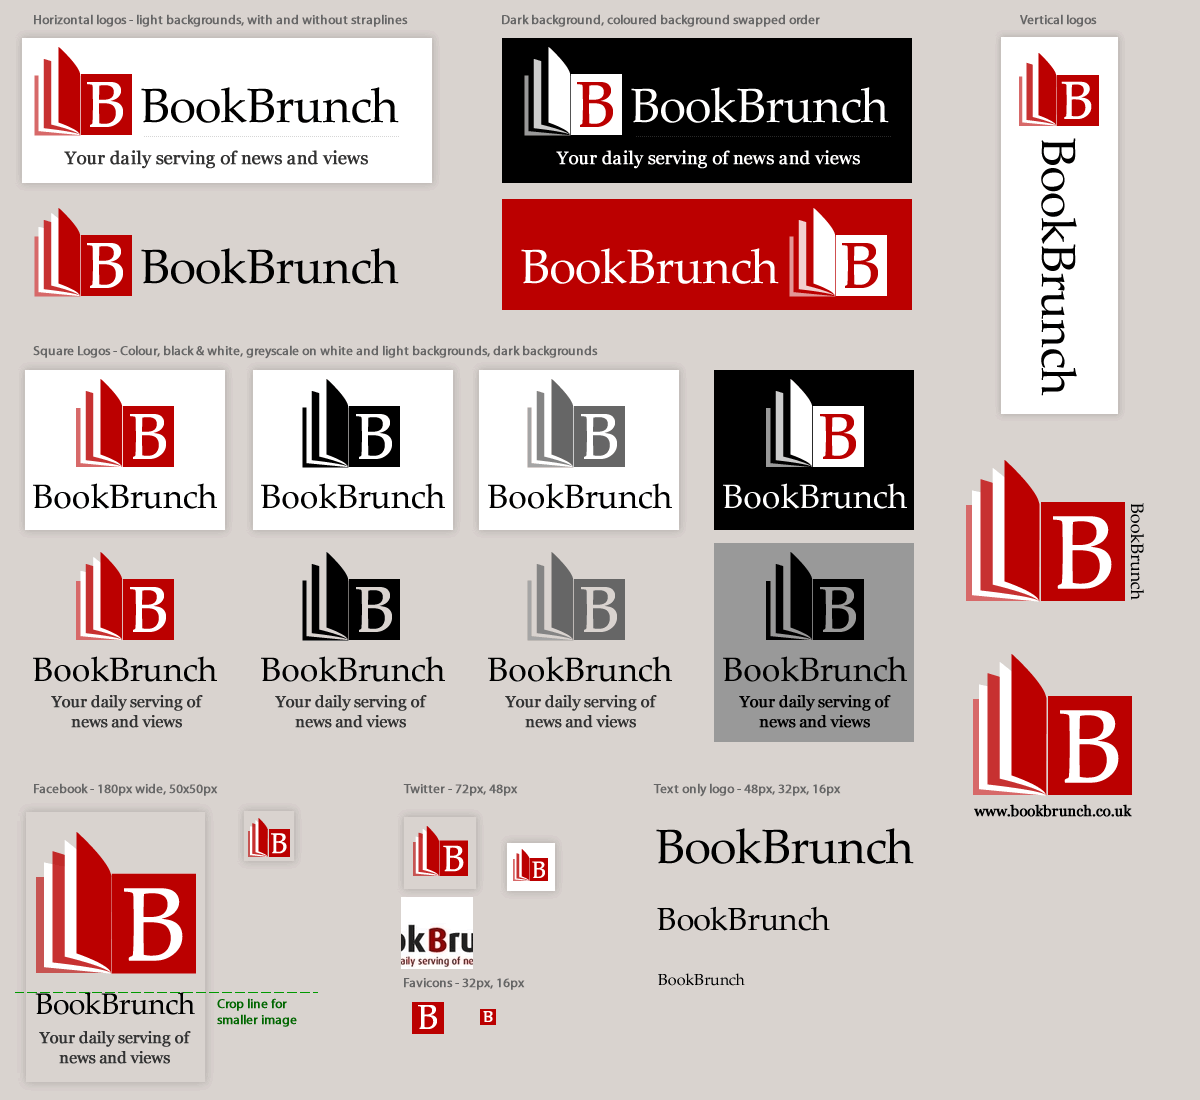 BookBrunch logo in different formats